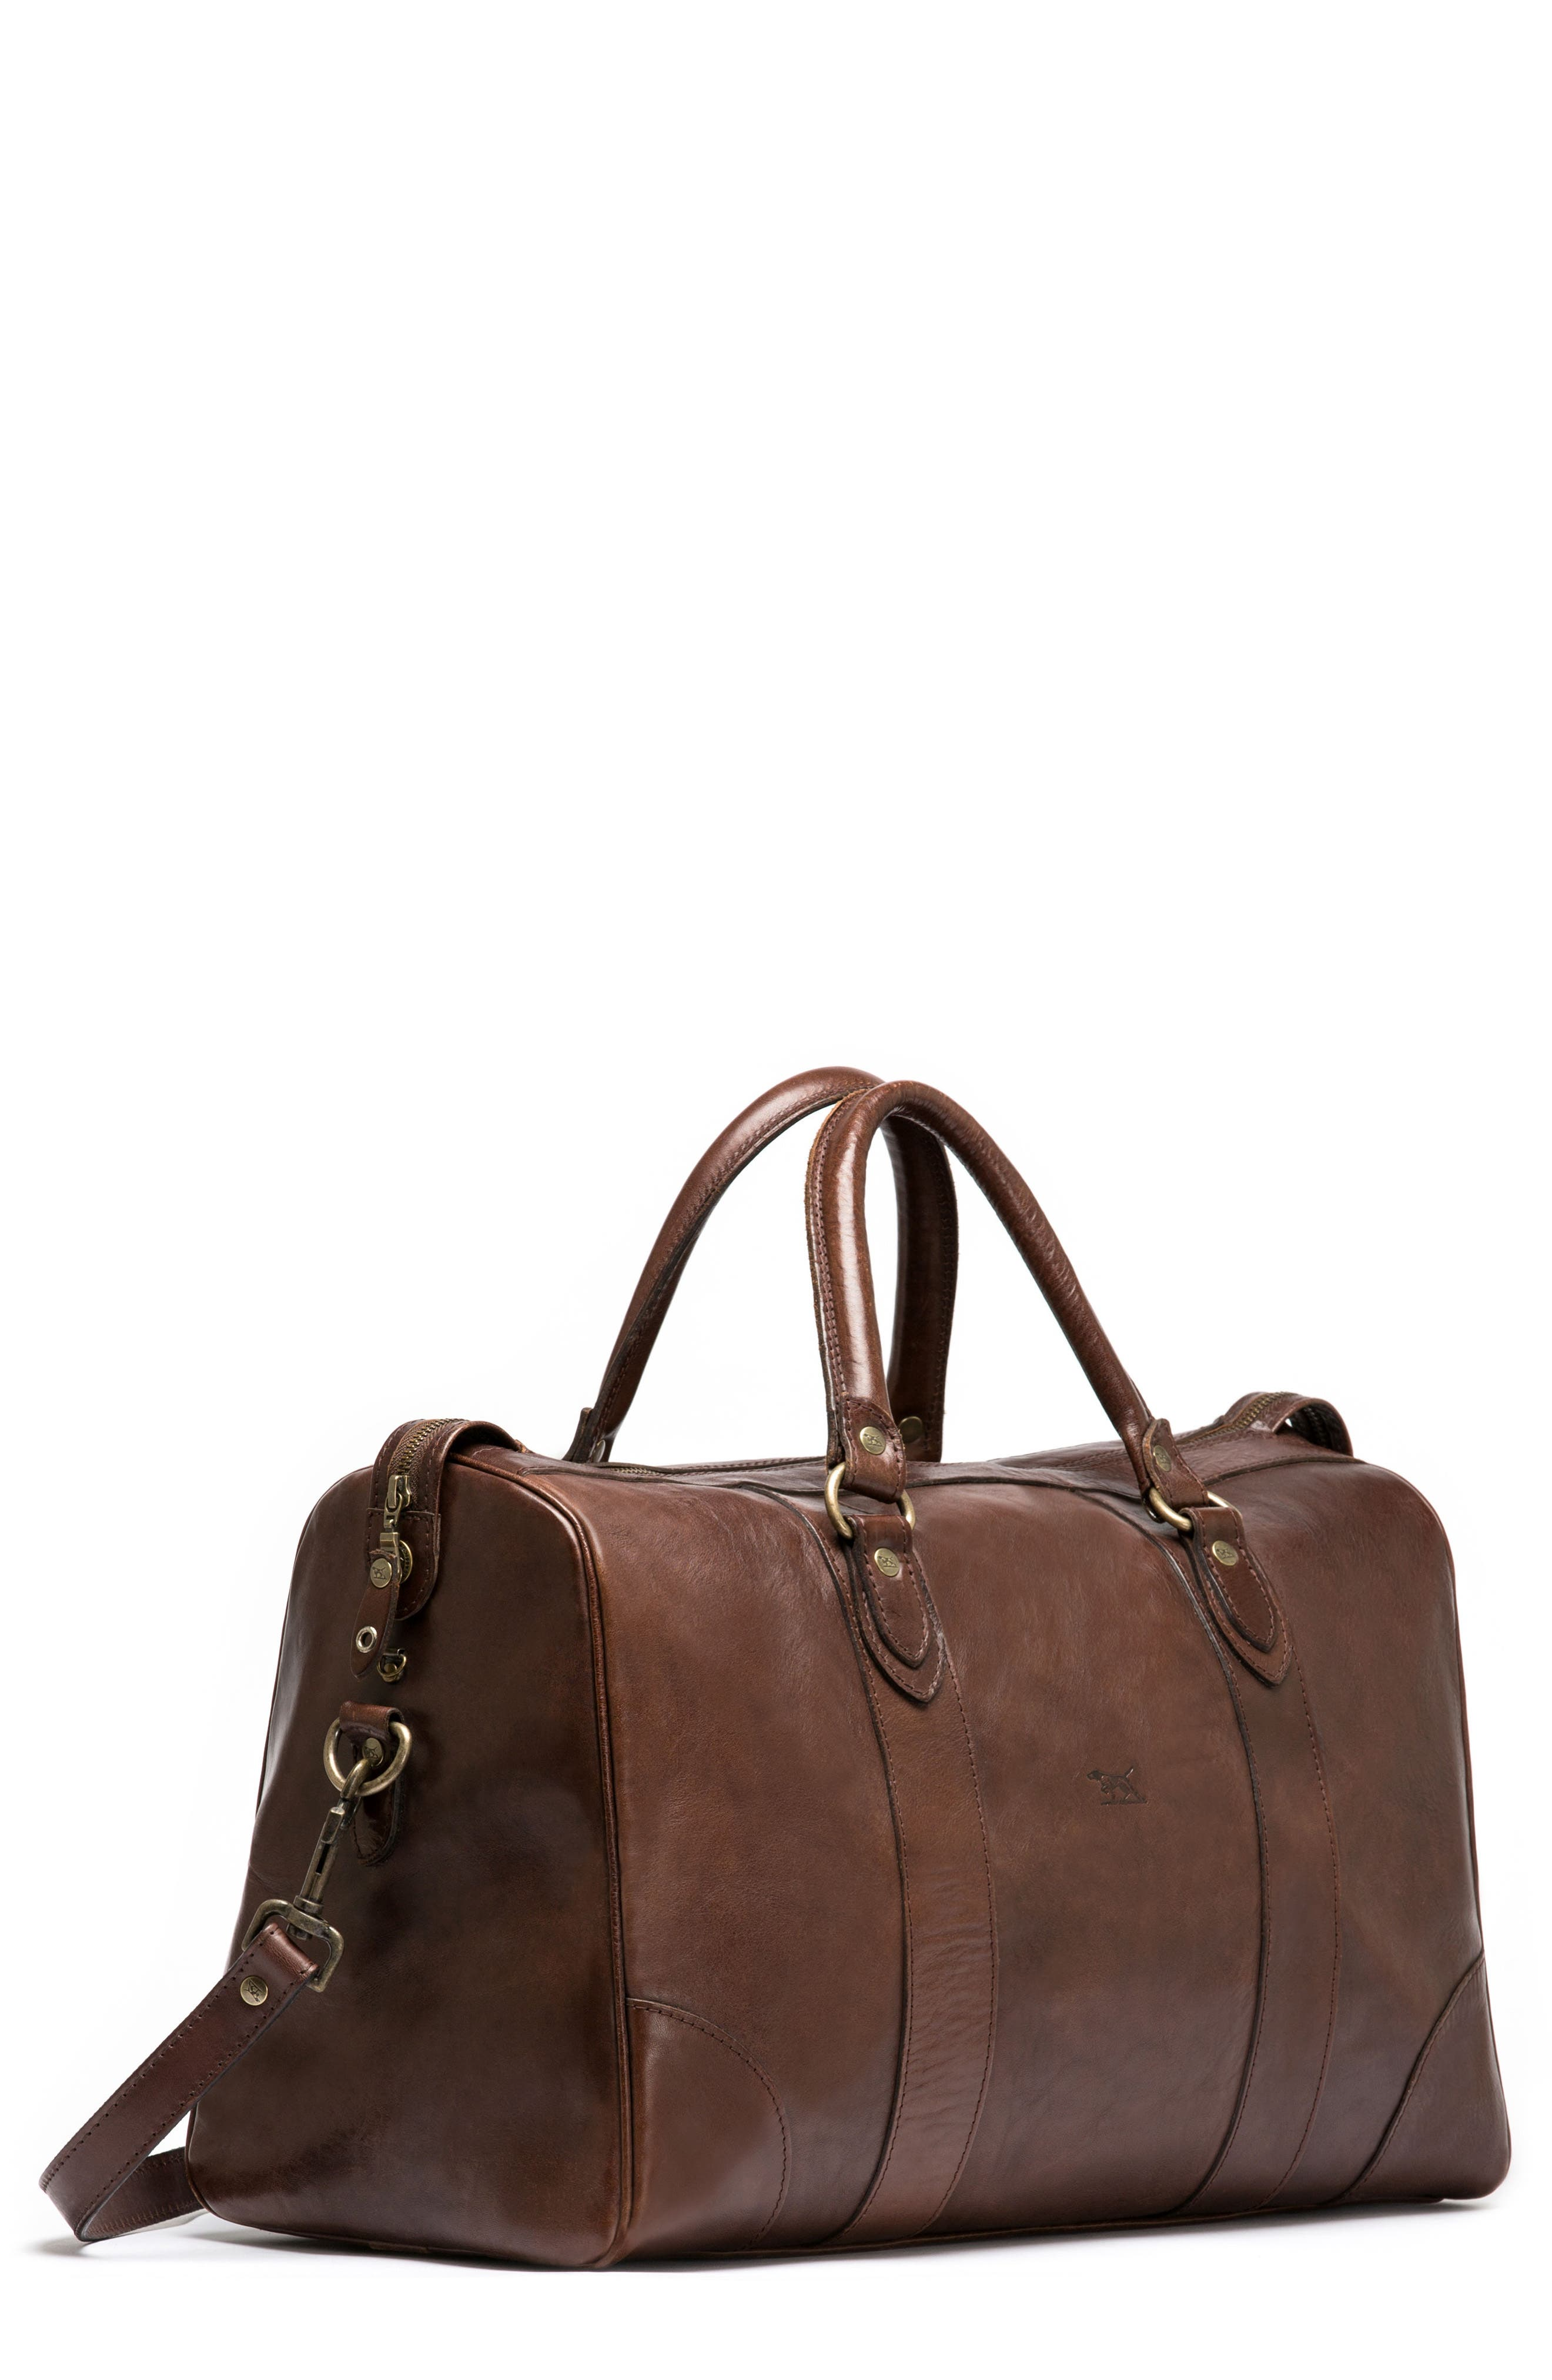 Normanby Duffel Bag,                             Alternate thumbnail 7, color,                             Cocoa